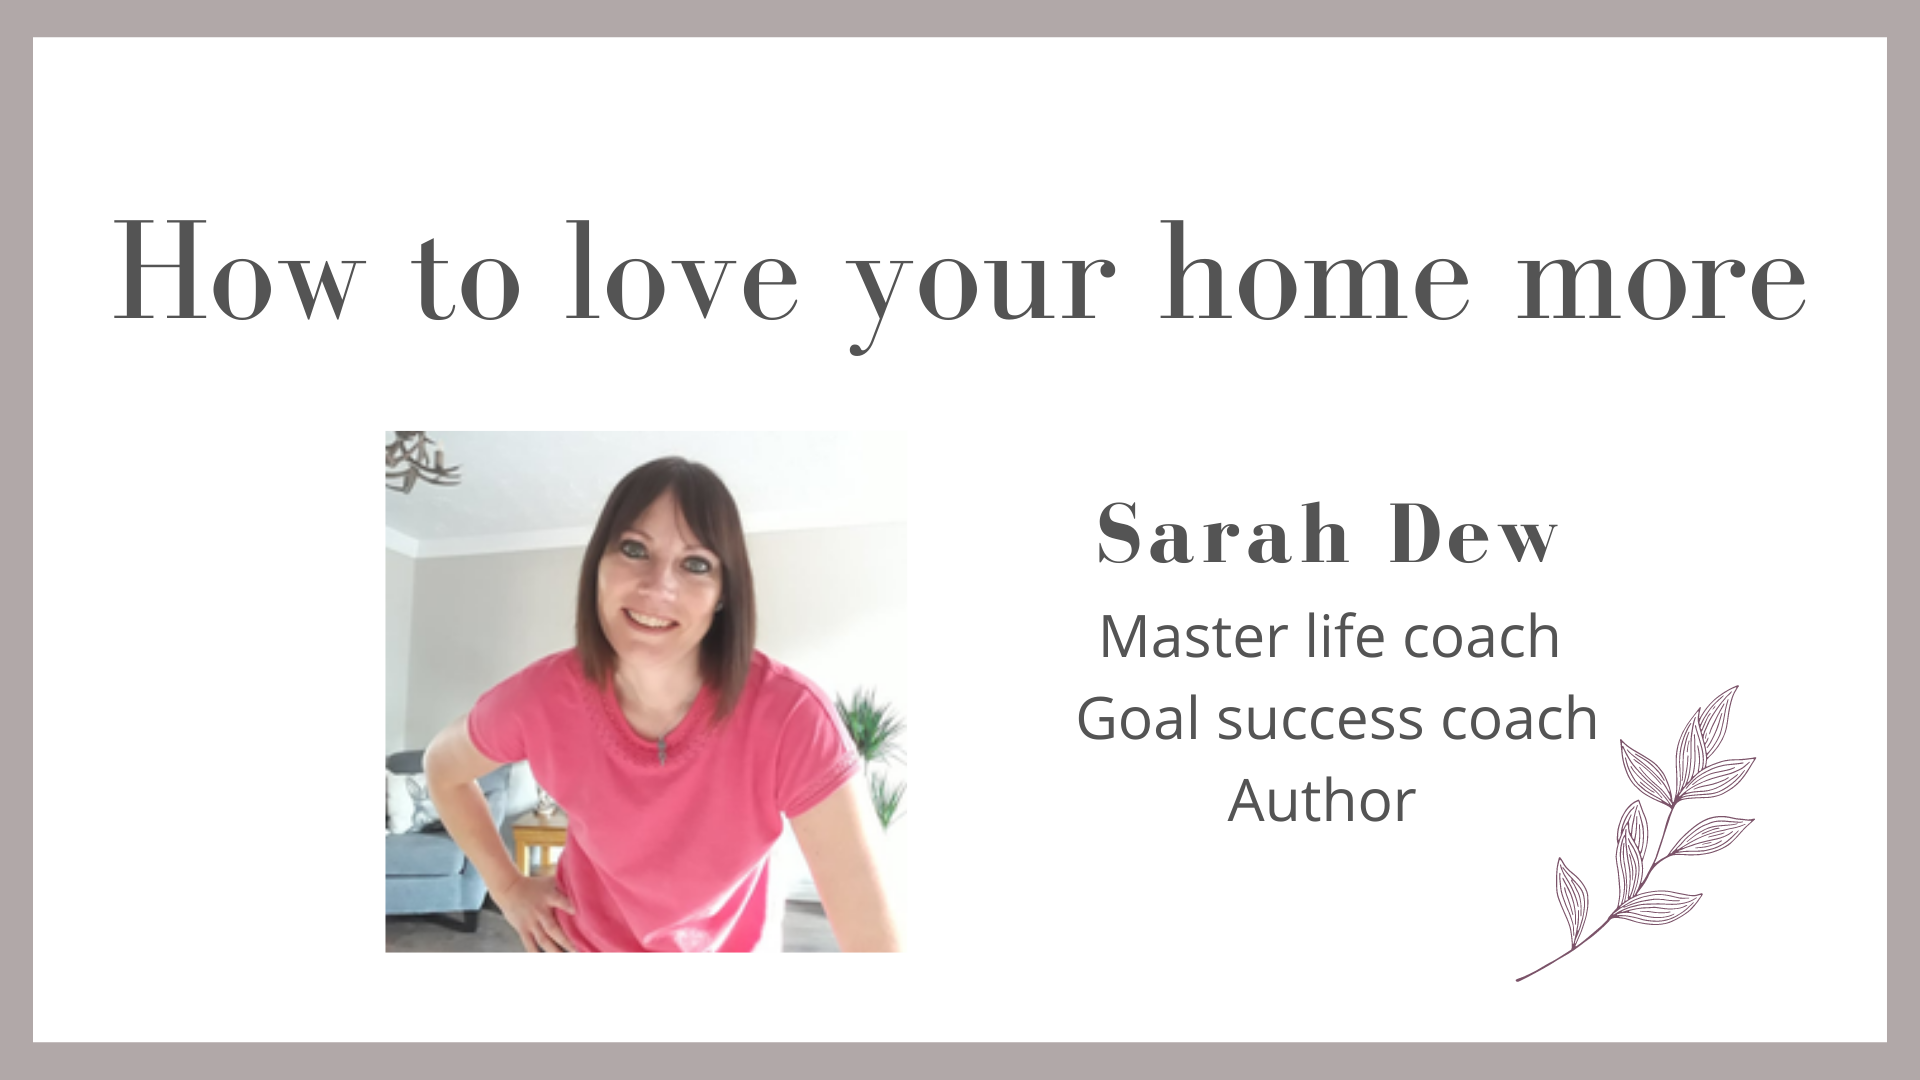 How to love your home more